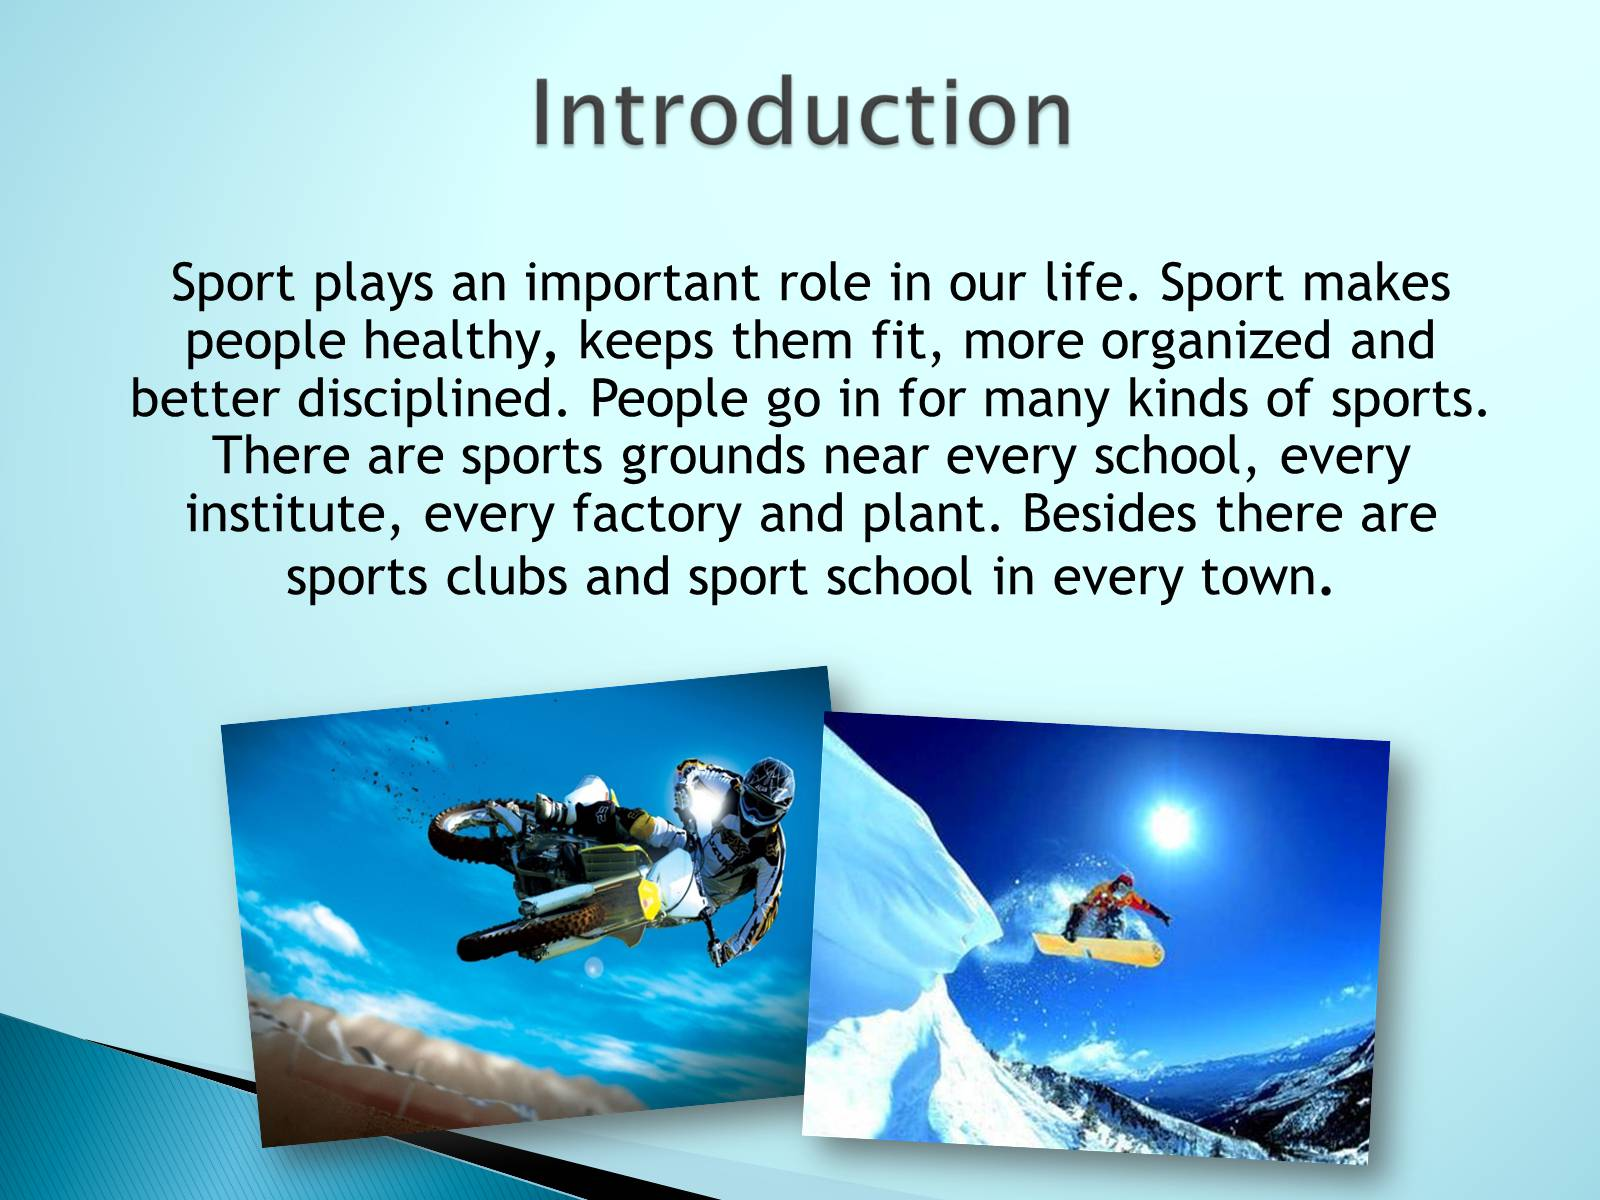 sports in school are very important essay The value of sports such as hockey, football, cricket, tennis, badminton, rowing and swimming --- all these and others not only give exercise to the libs but also provide a good deal of excitement and entertainment.